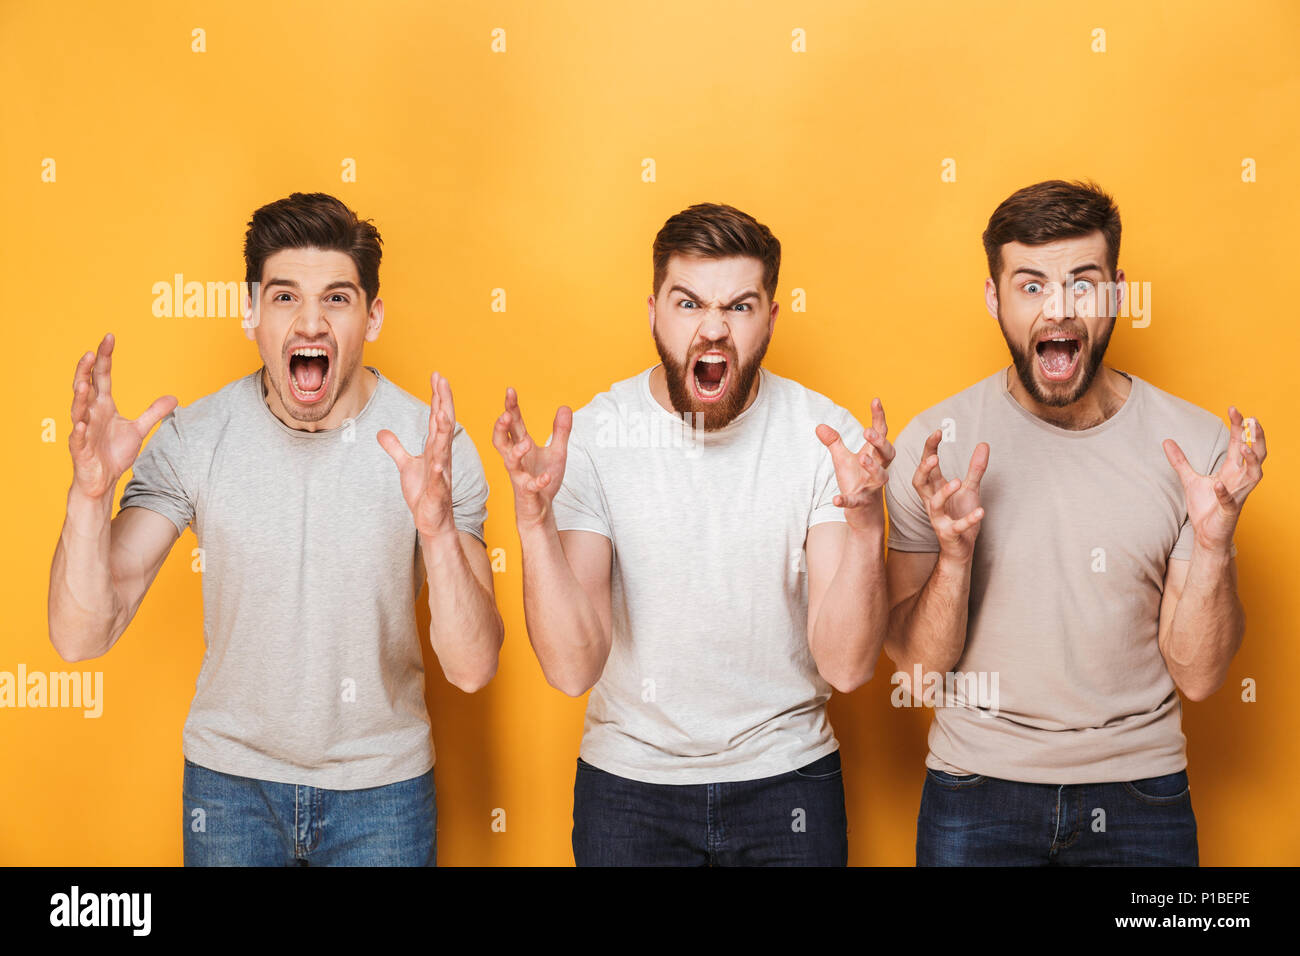 Three young angry men screaming isolated over yellow background - Stock Image